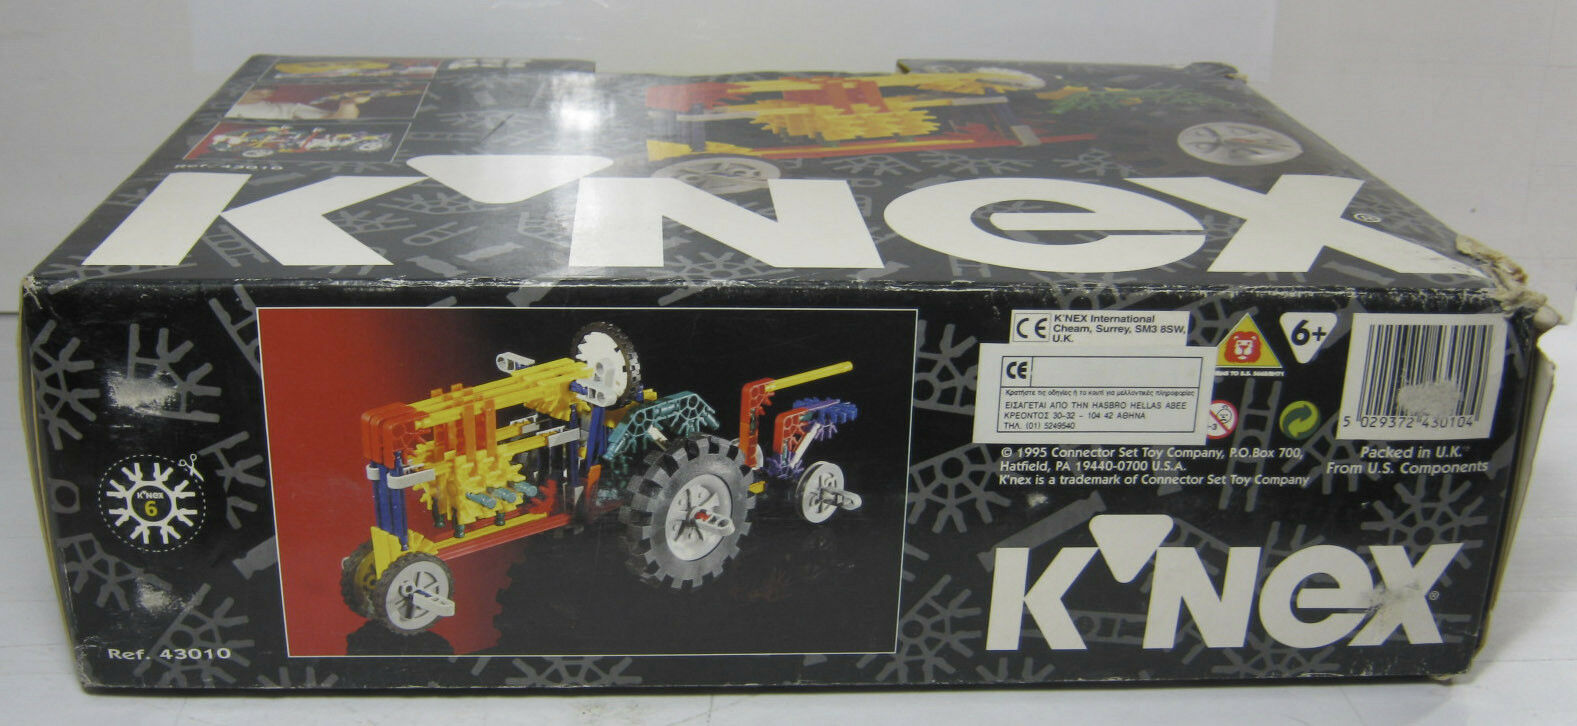 1995 K'NEX K'NEX K'NEX KNEX POWER 3 MODELS 325 PIECES PCS SUITCASE BIG SET MISB NEW 5d72ef